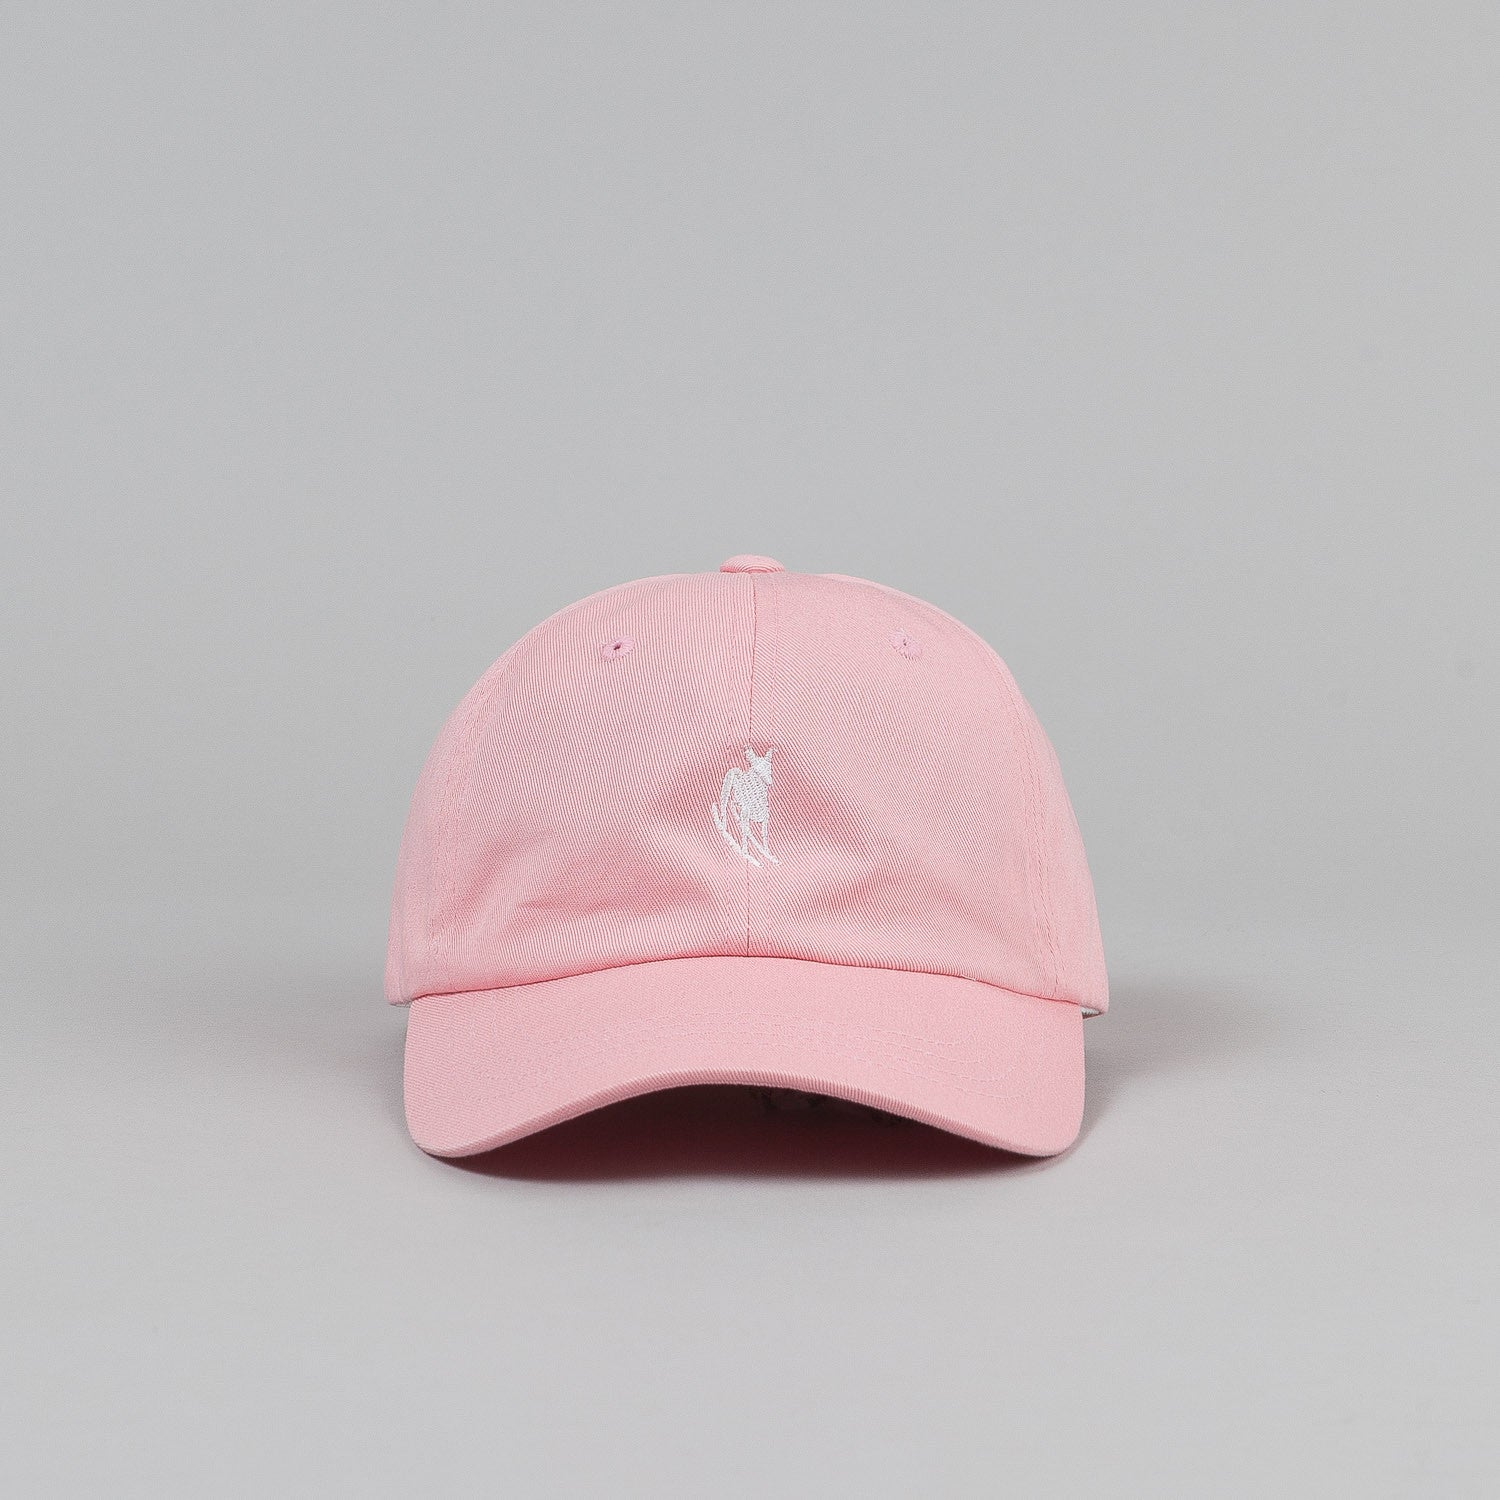 Welcome Rocking Dog Slider Cap - Pink / White